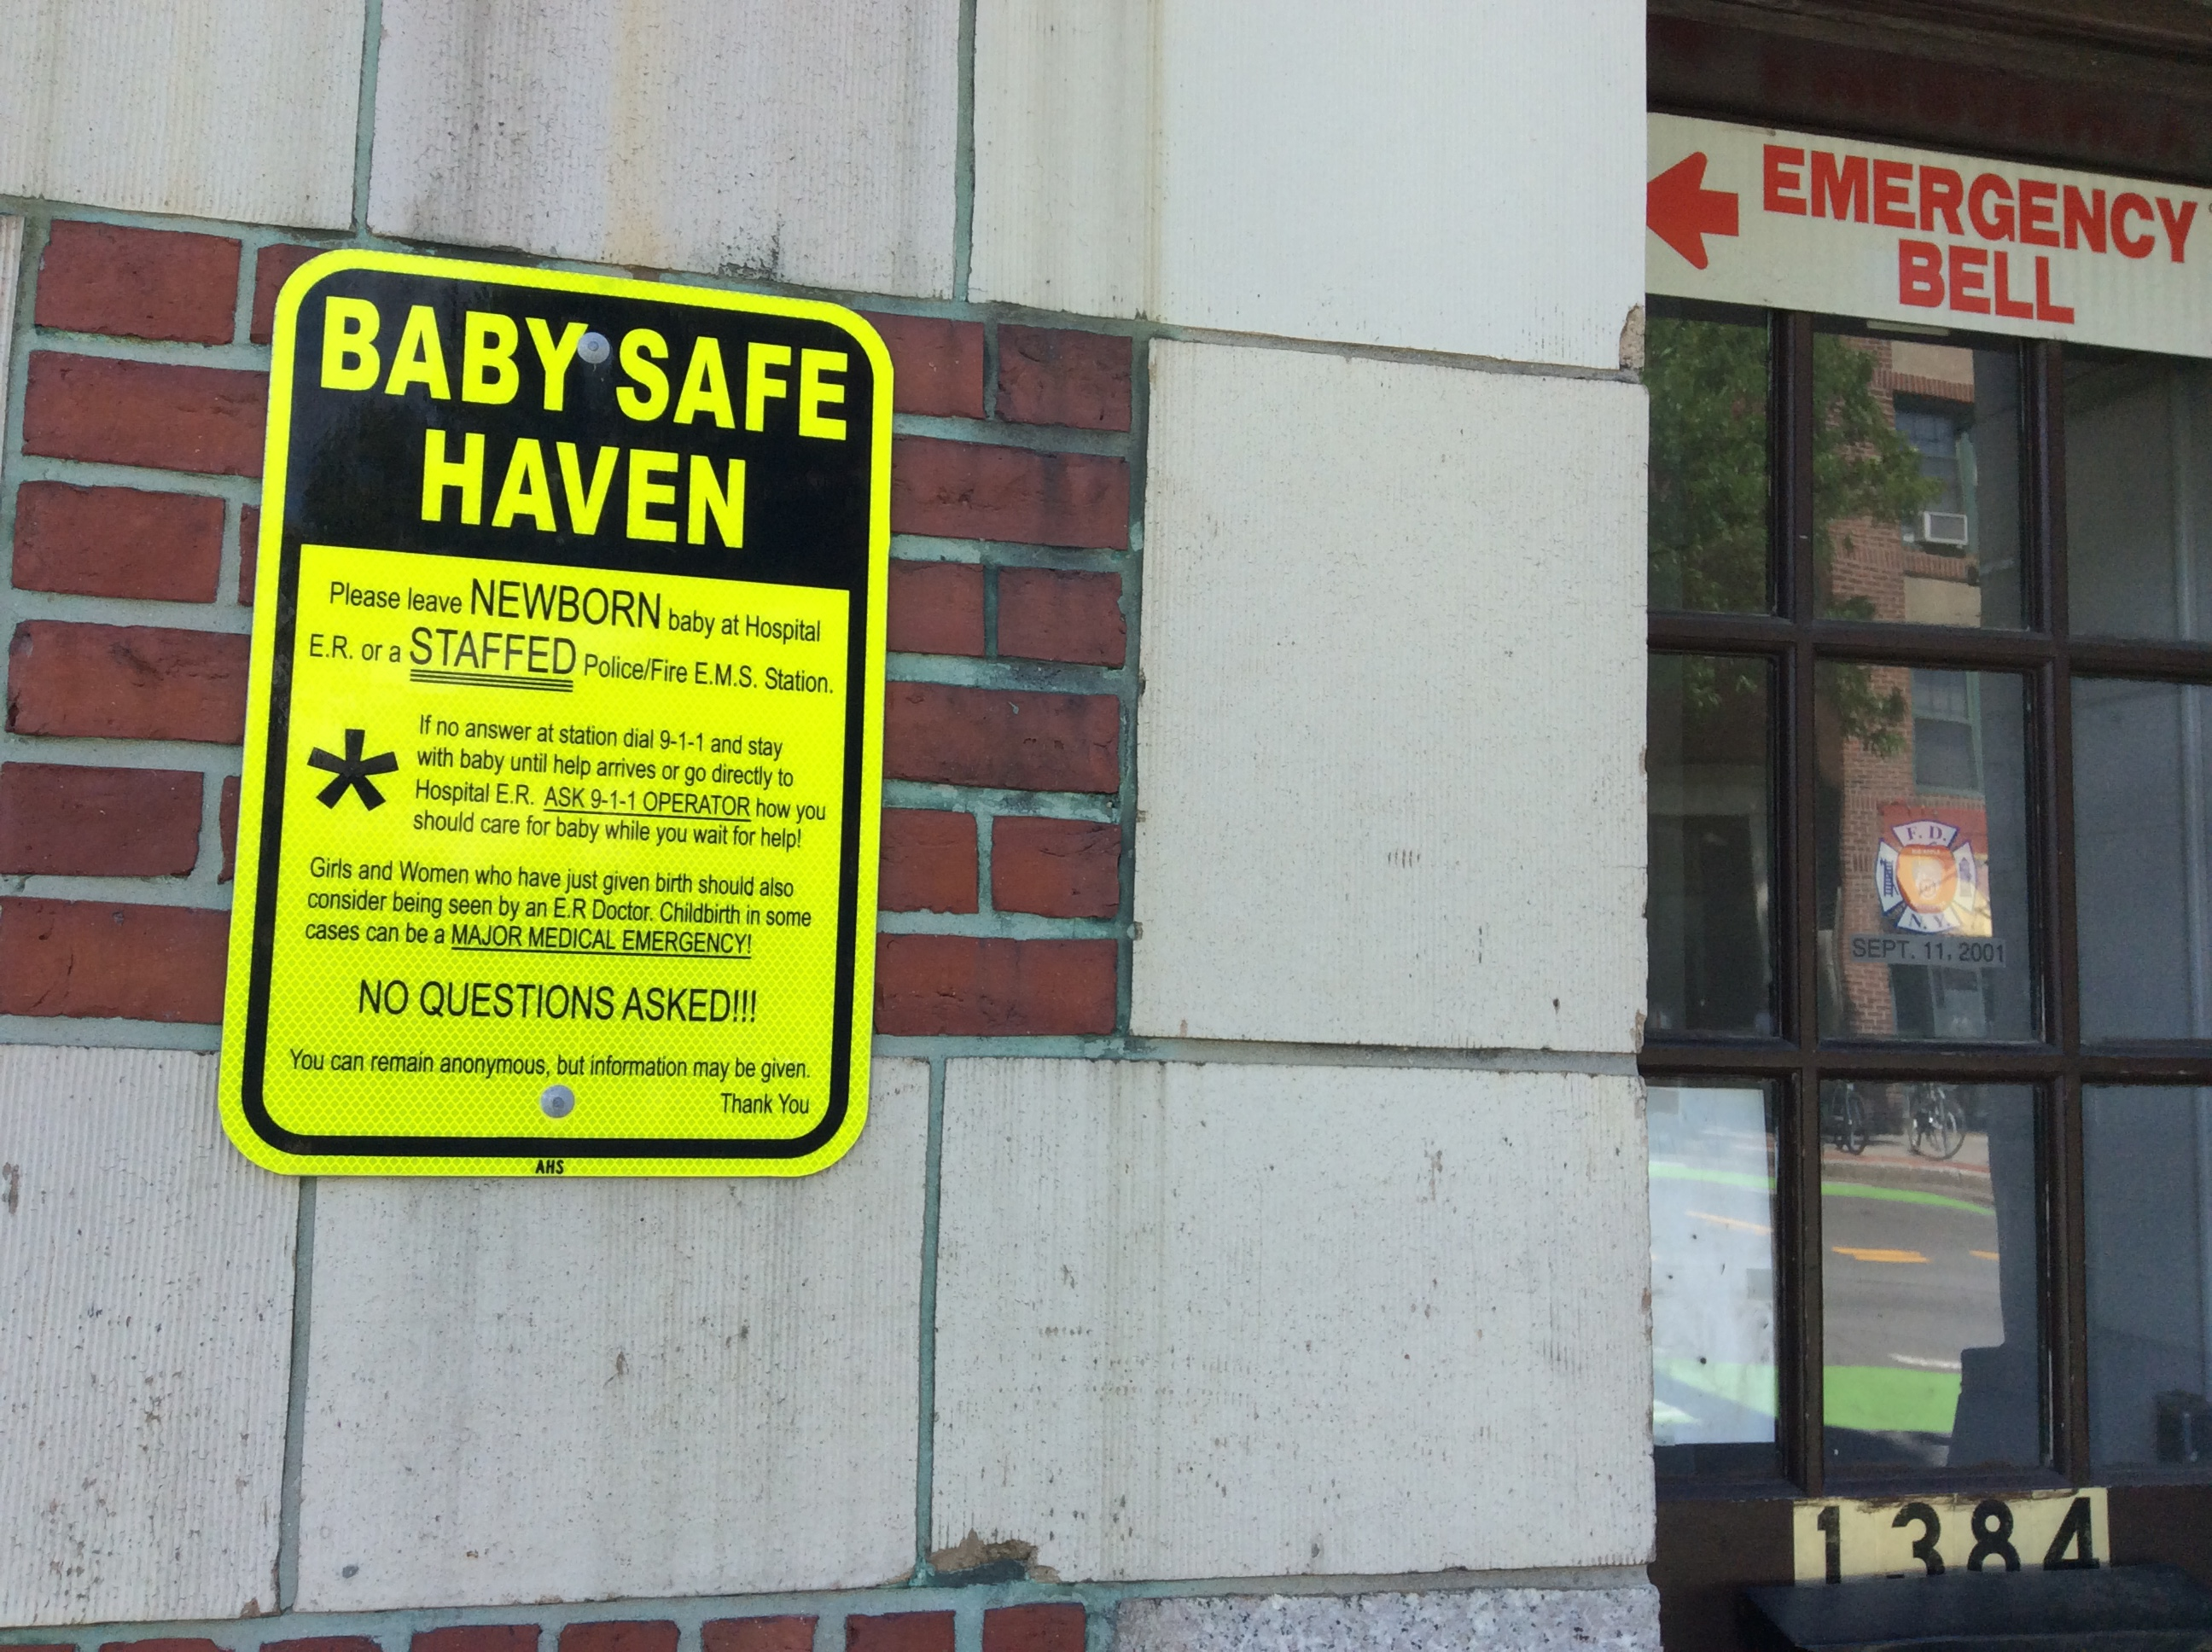 Photo: Outside of firestation, photo of Safe haven signage and direction to doorbell. (Detailed, lengthy info on sign.)